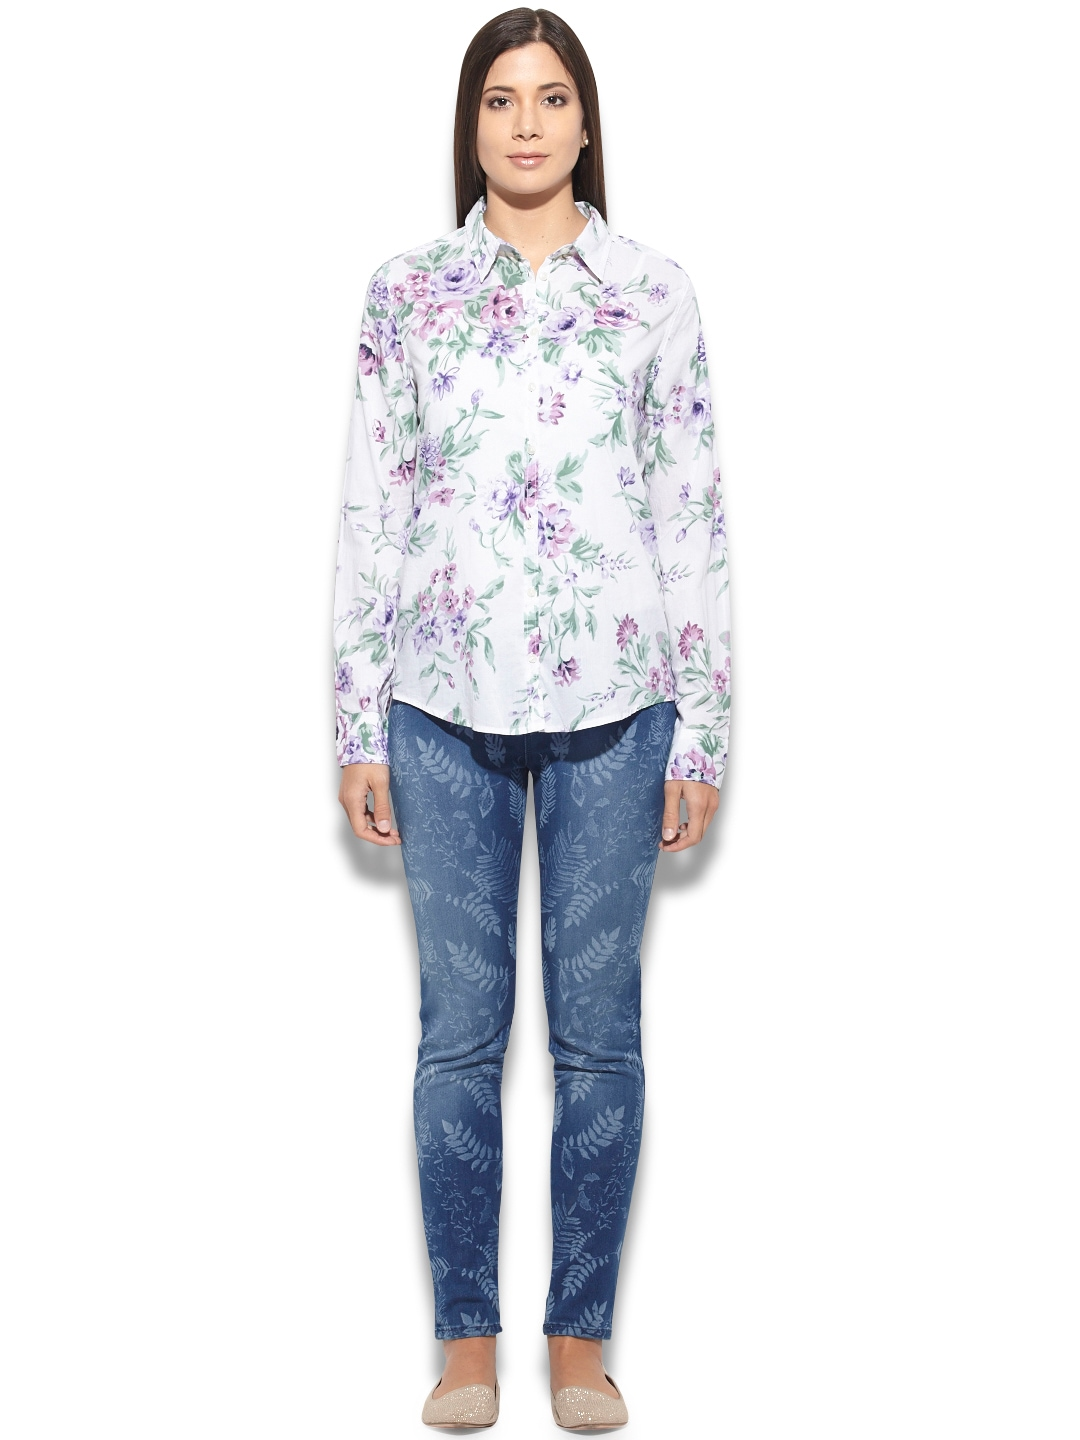 United colors of benetton clothes for womens